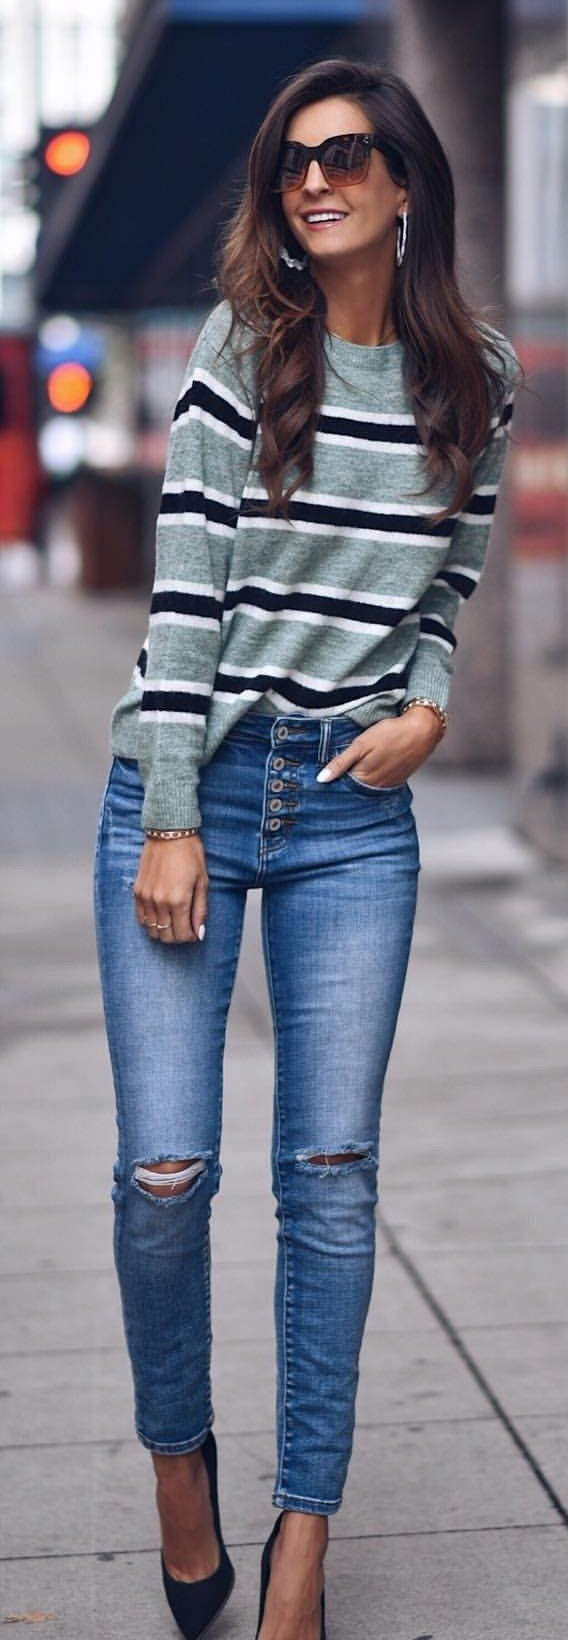 gray, white, and black striped crew-neck long-sleeved shirt